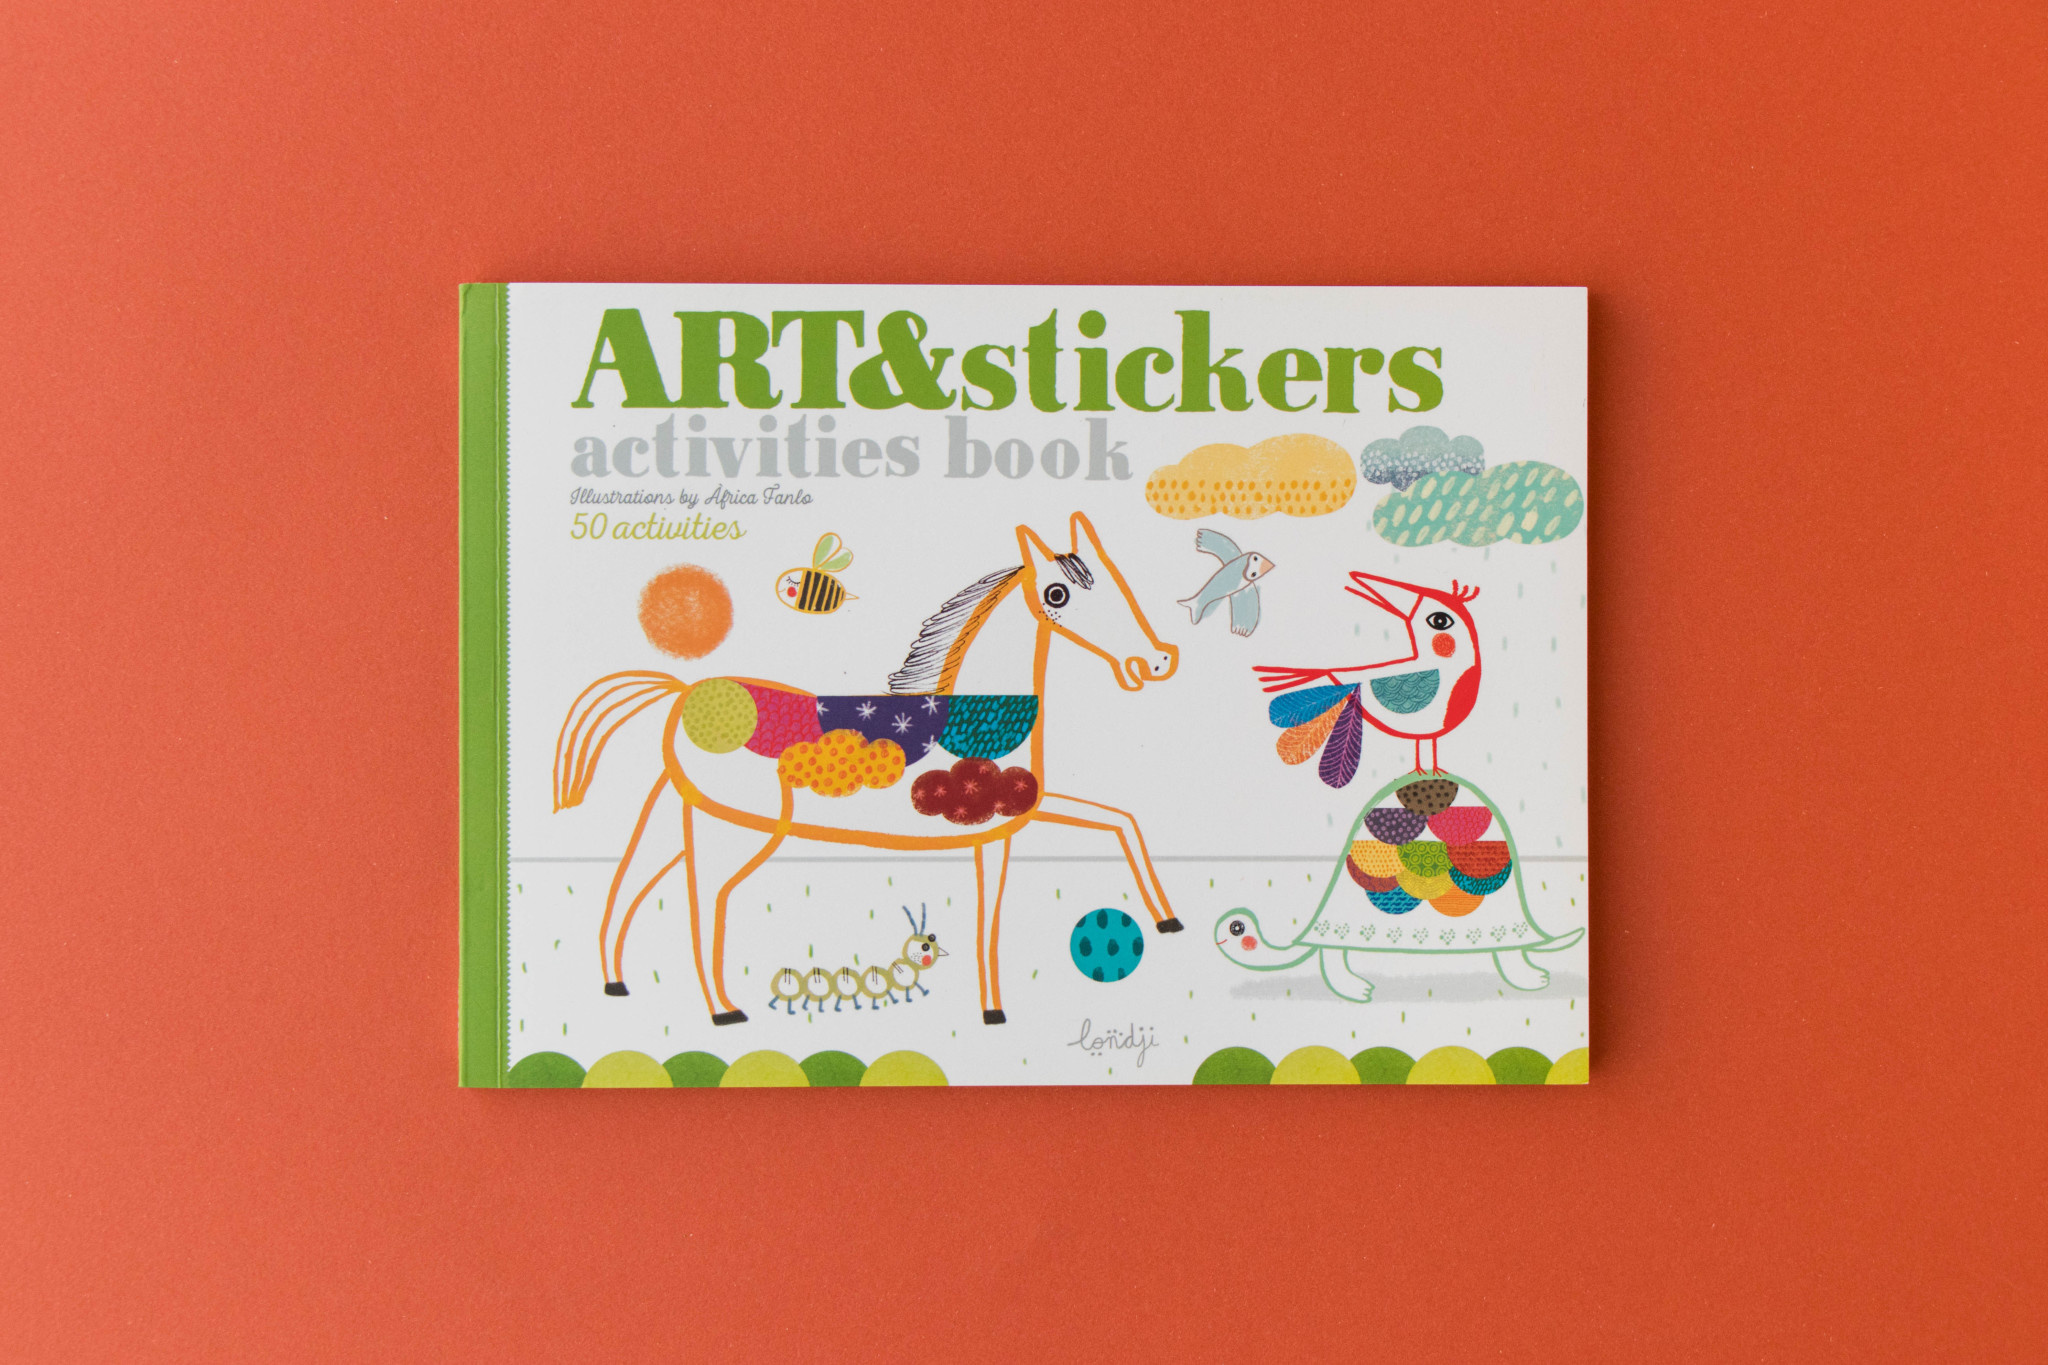 Activities book art & stickers-11